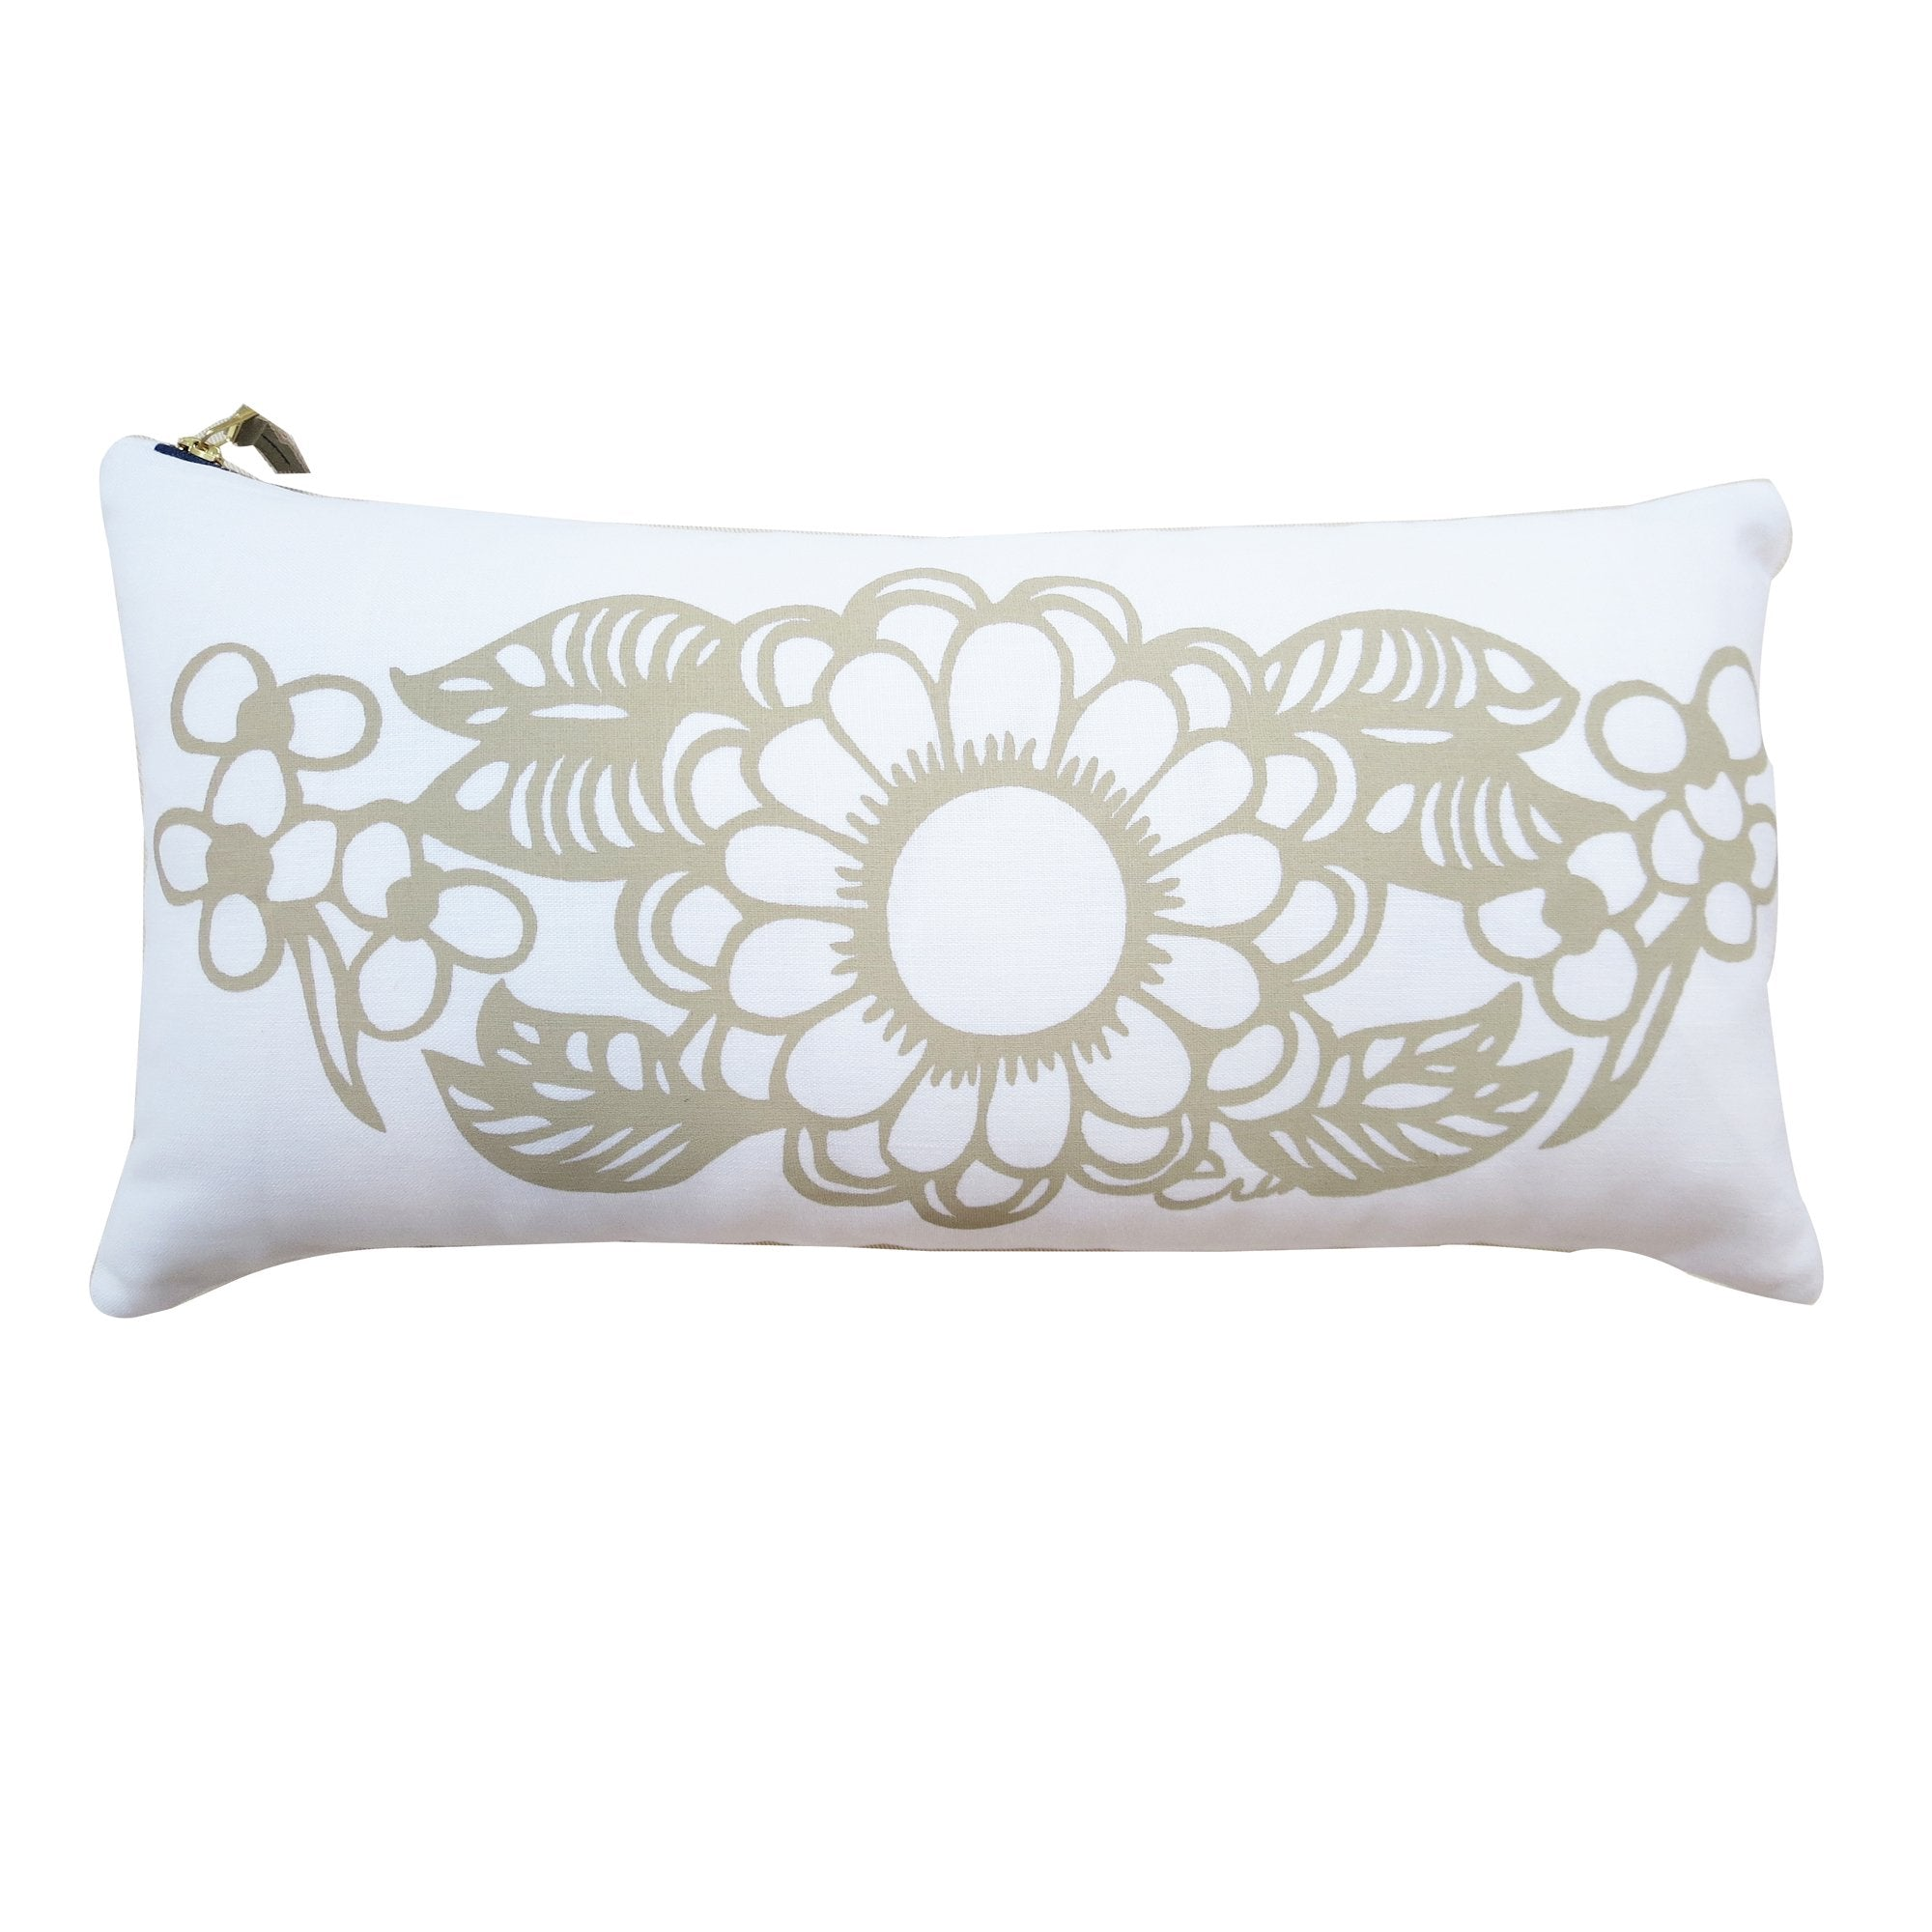 DAHLIA OATMEAL LUMBAR PILLOW COVER